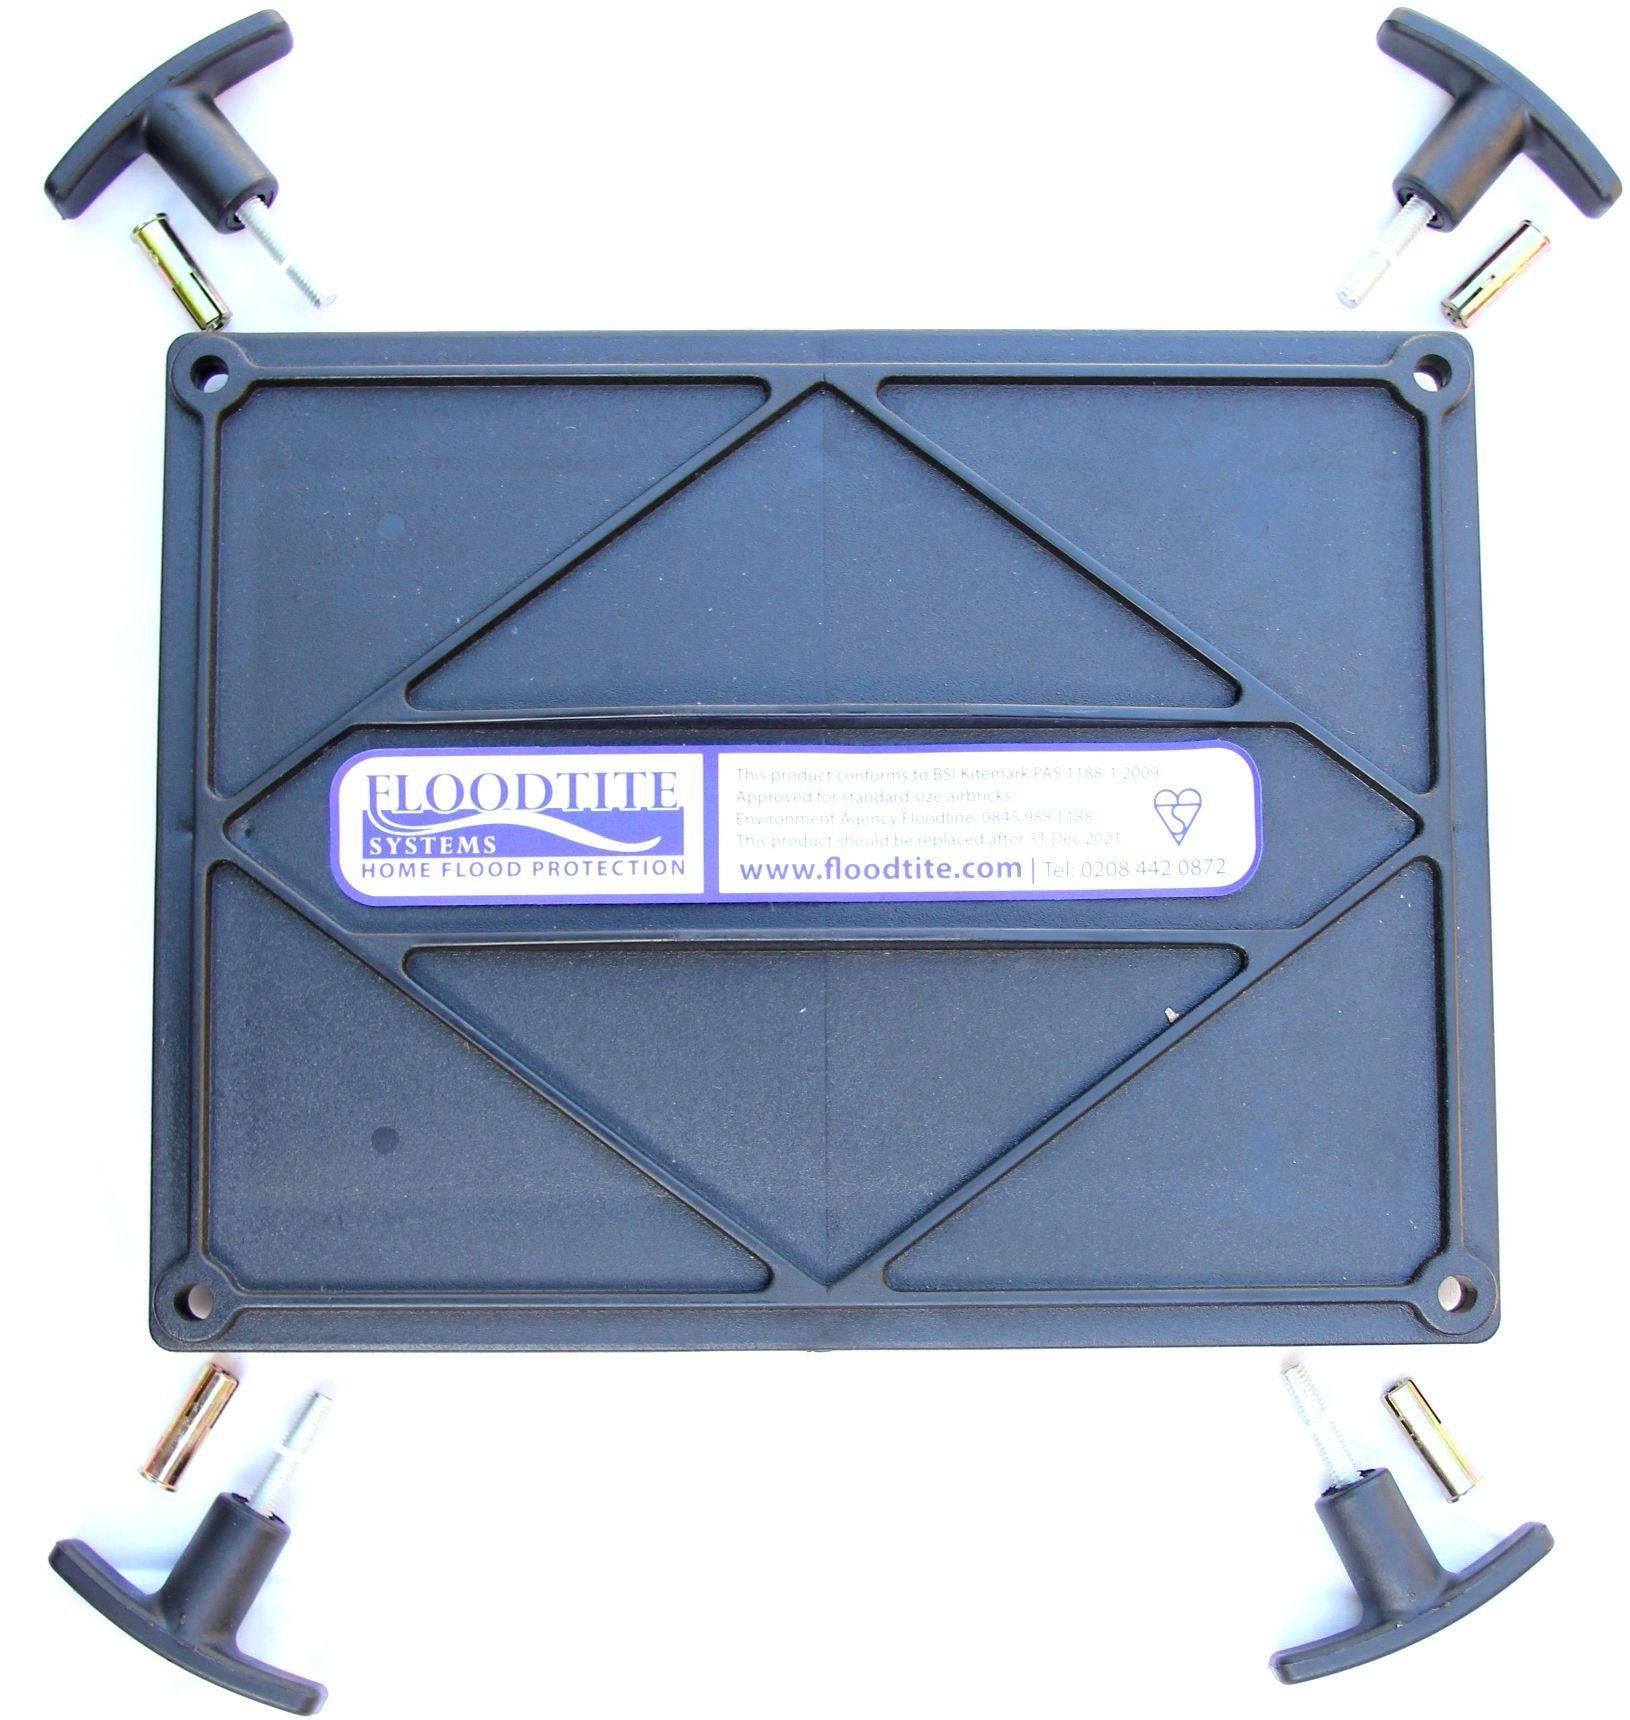 Image of AP Flood Alert Double Air Brick Cover - 2 Pack.